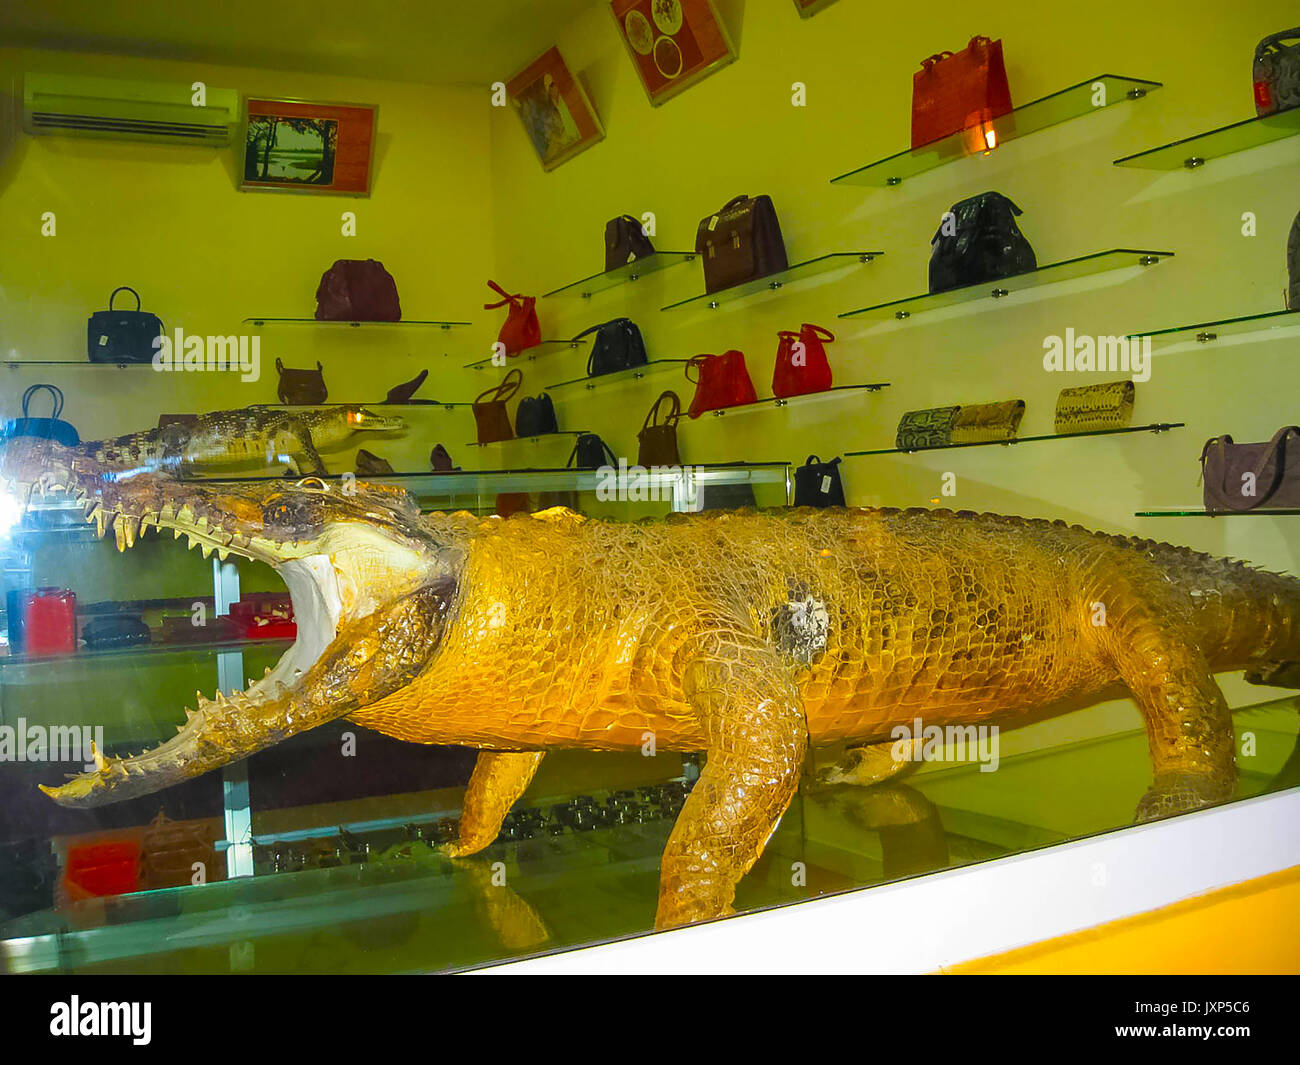 Nha Trang, Vietnam - February 12, 2011: The Shop of souvenirs and handbags from the products of crocodile leather - Stock Image